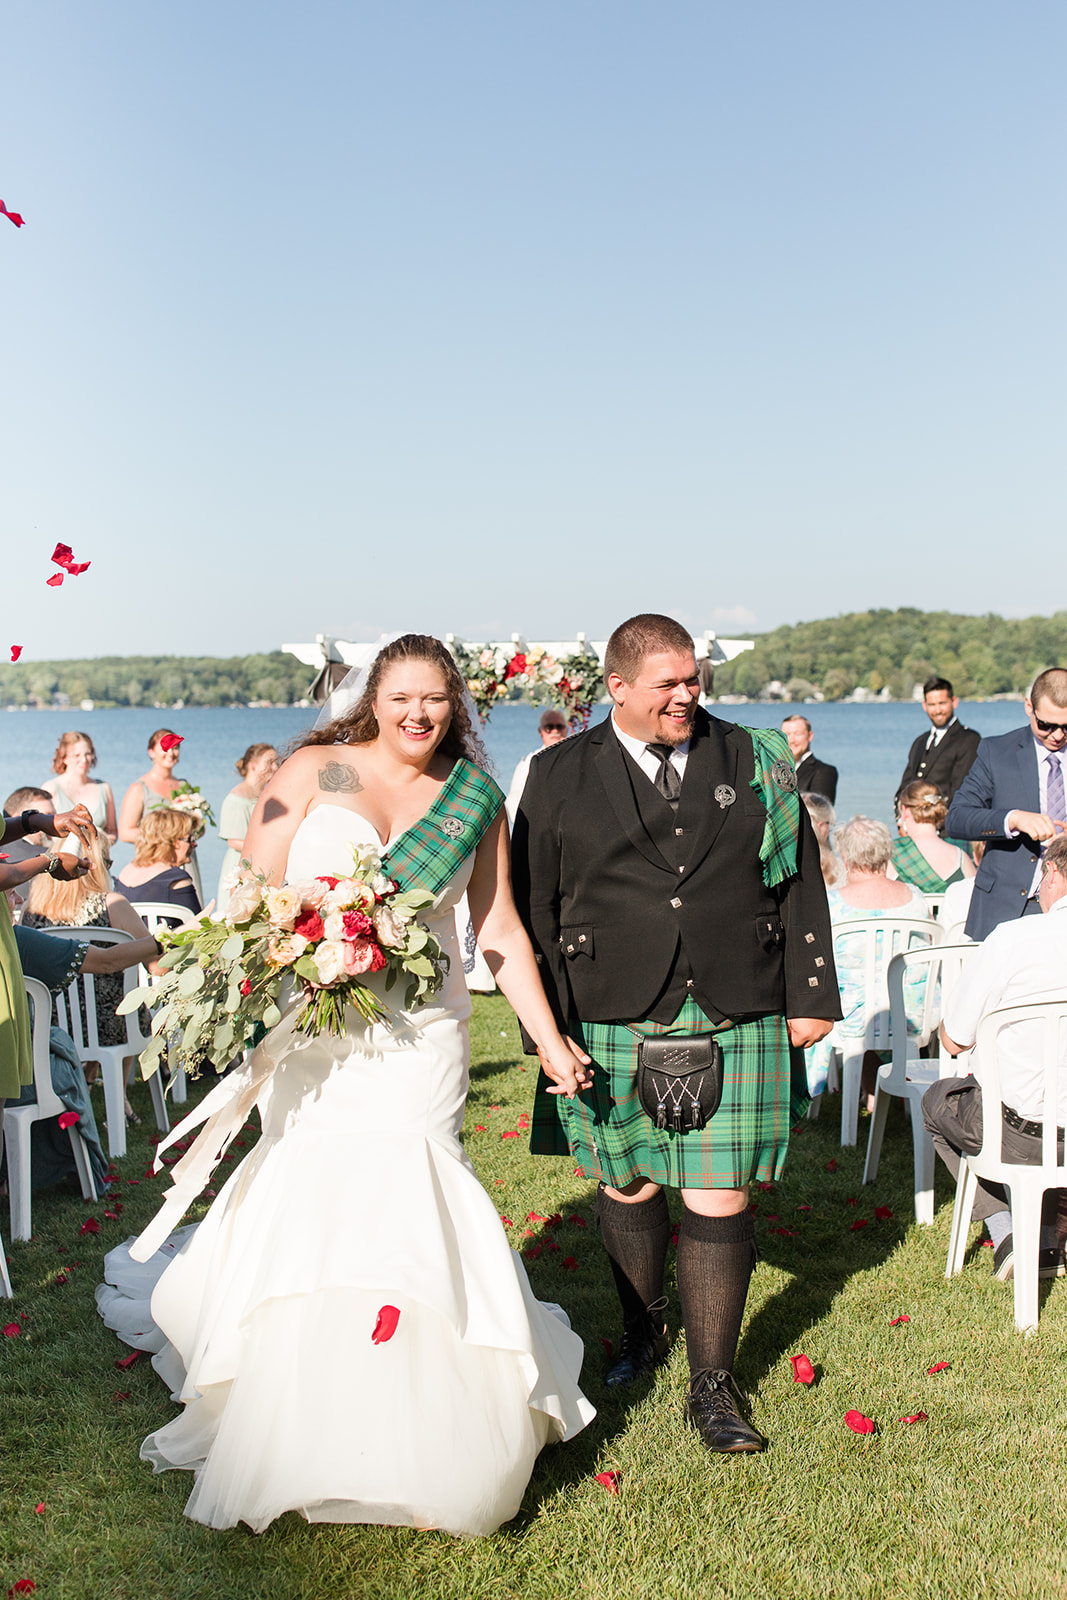 A rose petal toss during a lakeside wedding